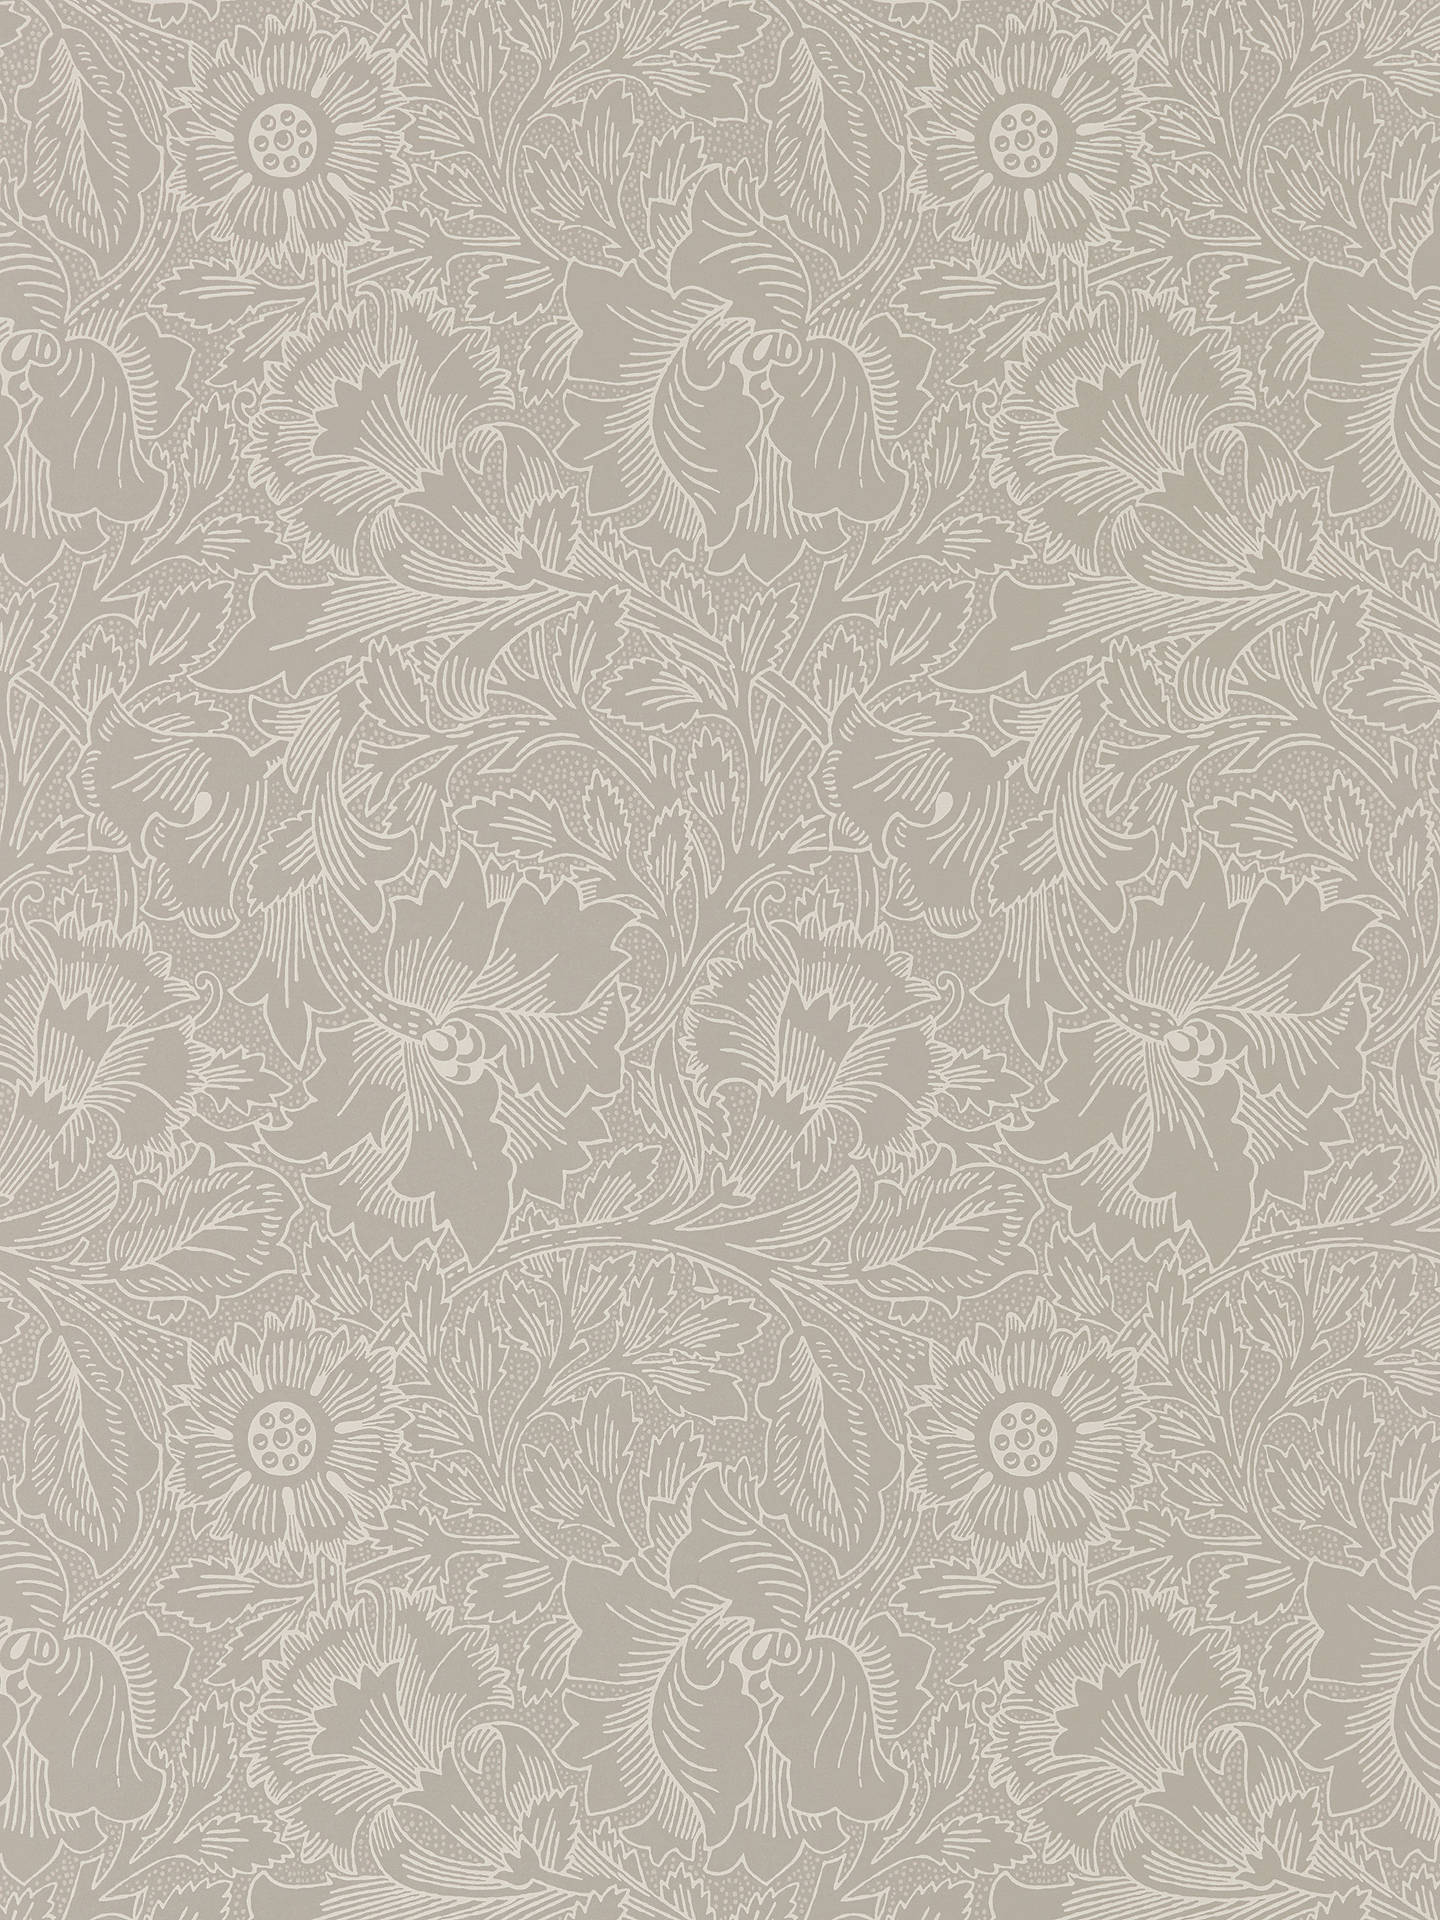 Buy Morris & Co. Pure Poppy Wallpaper, Dove / Chalk DMPU216032 Online at johnlewis.com